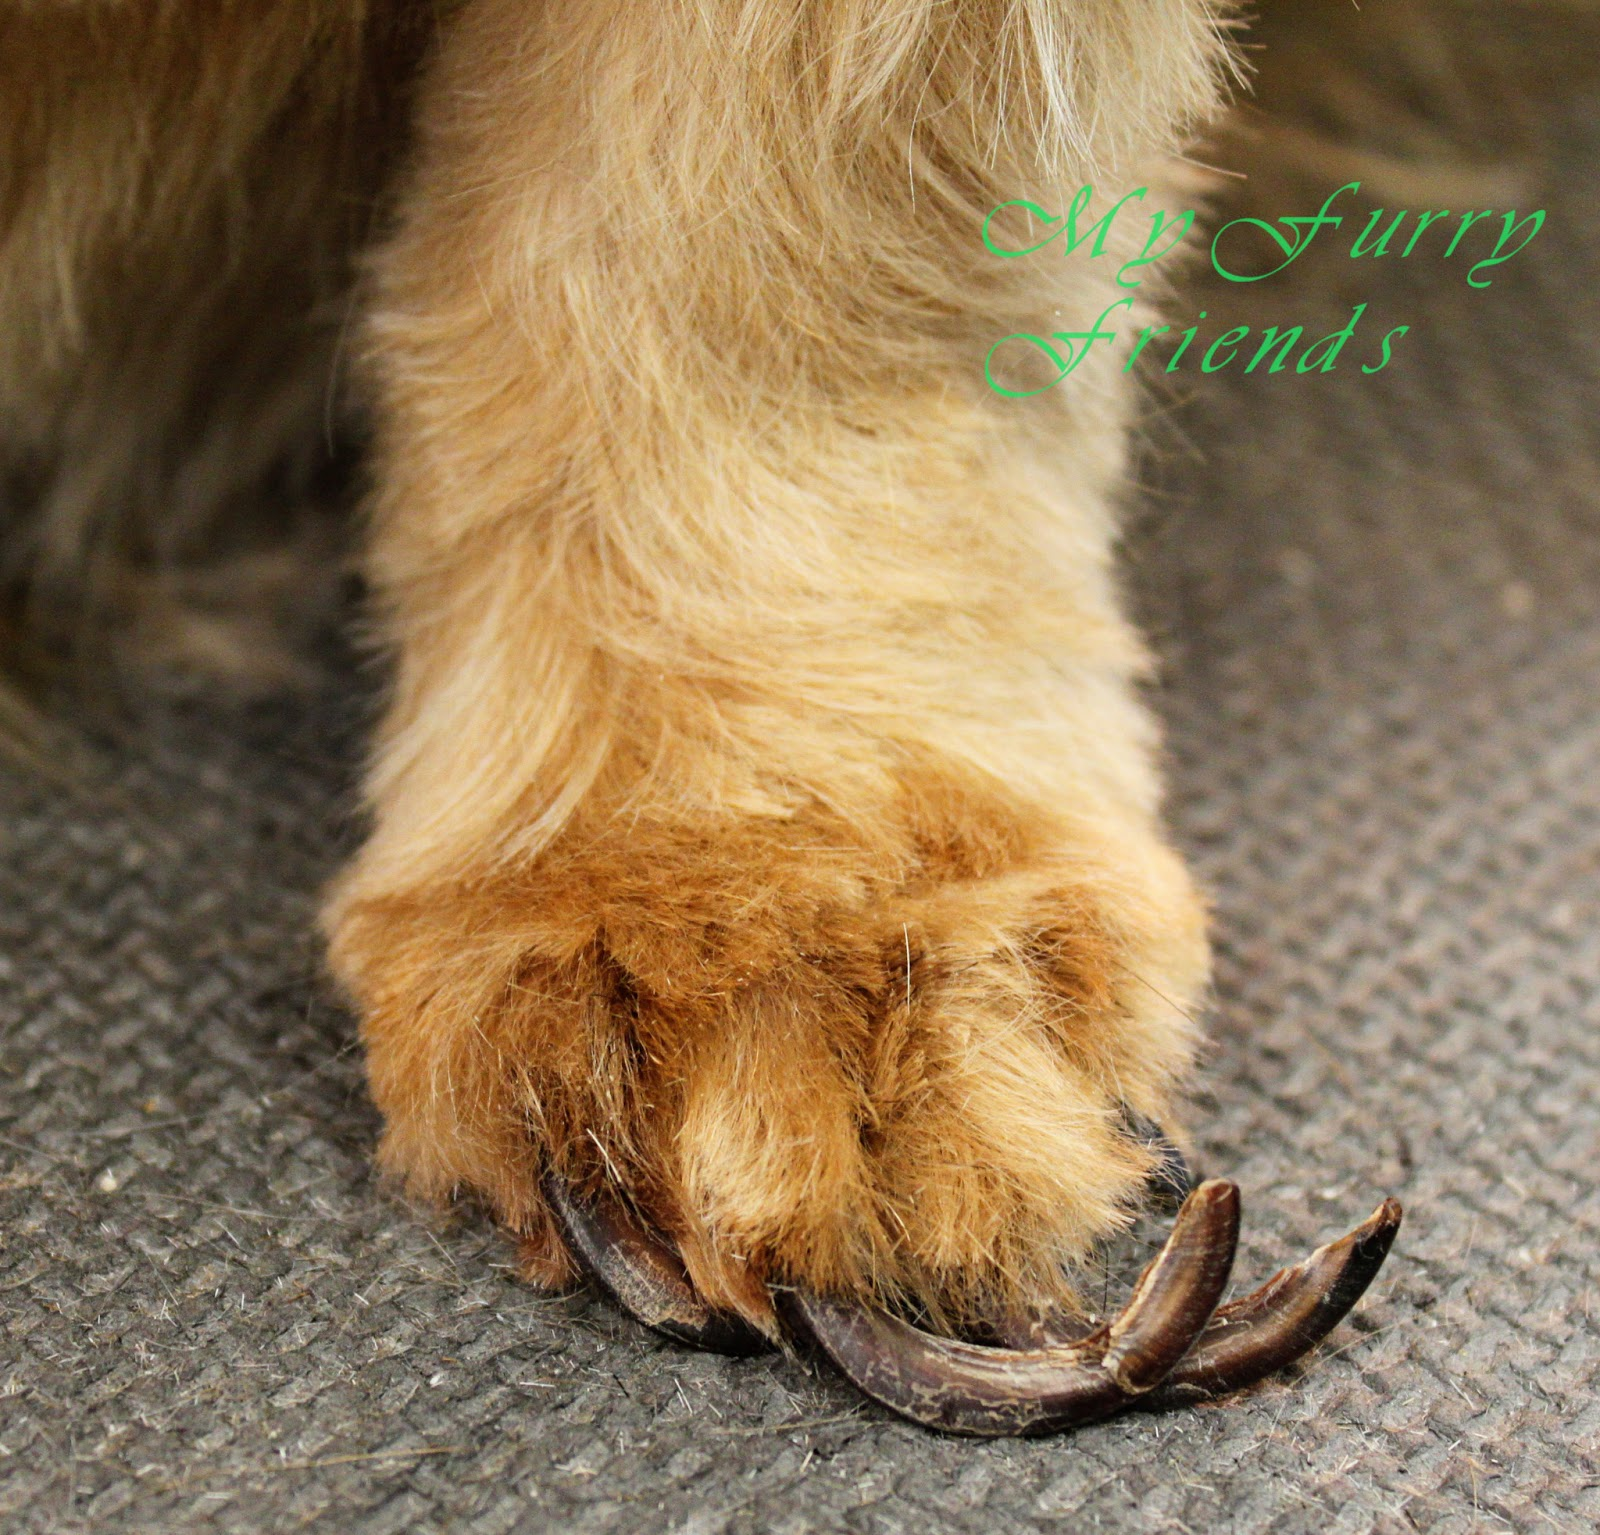 Pet Grooming: The Good, The Bad, & The Furry: NAILS.........GRRRR!